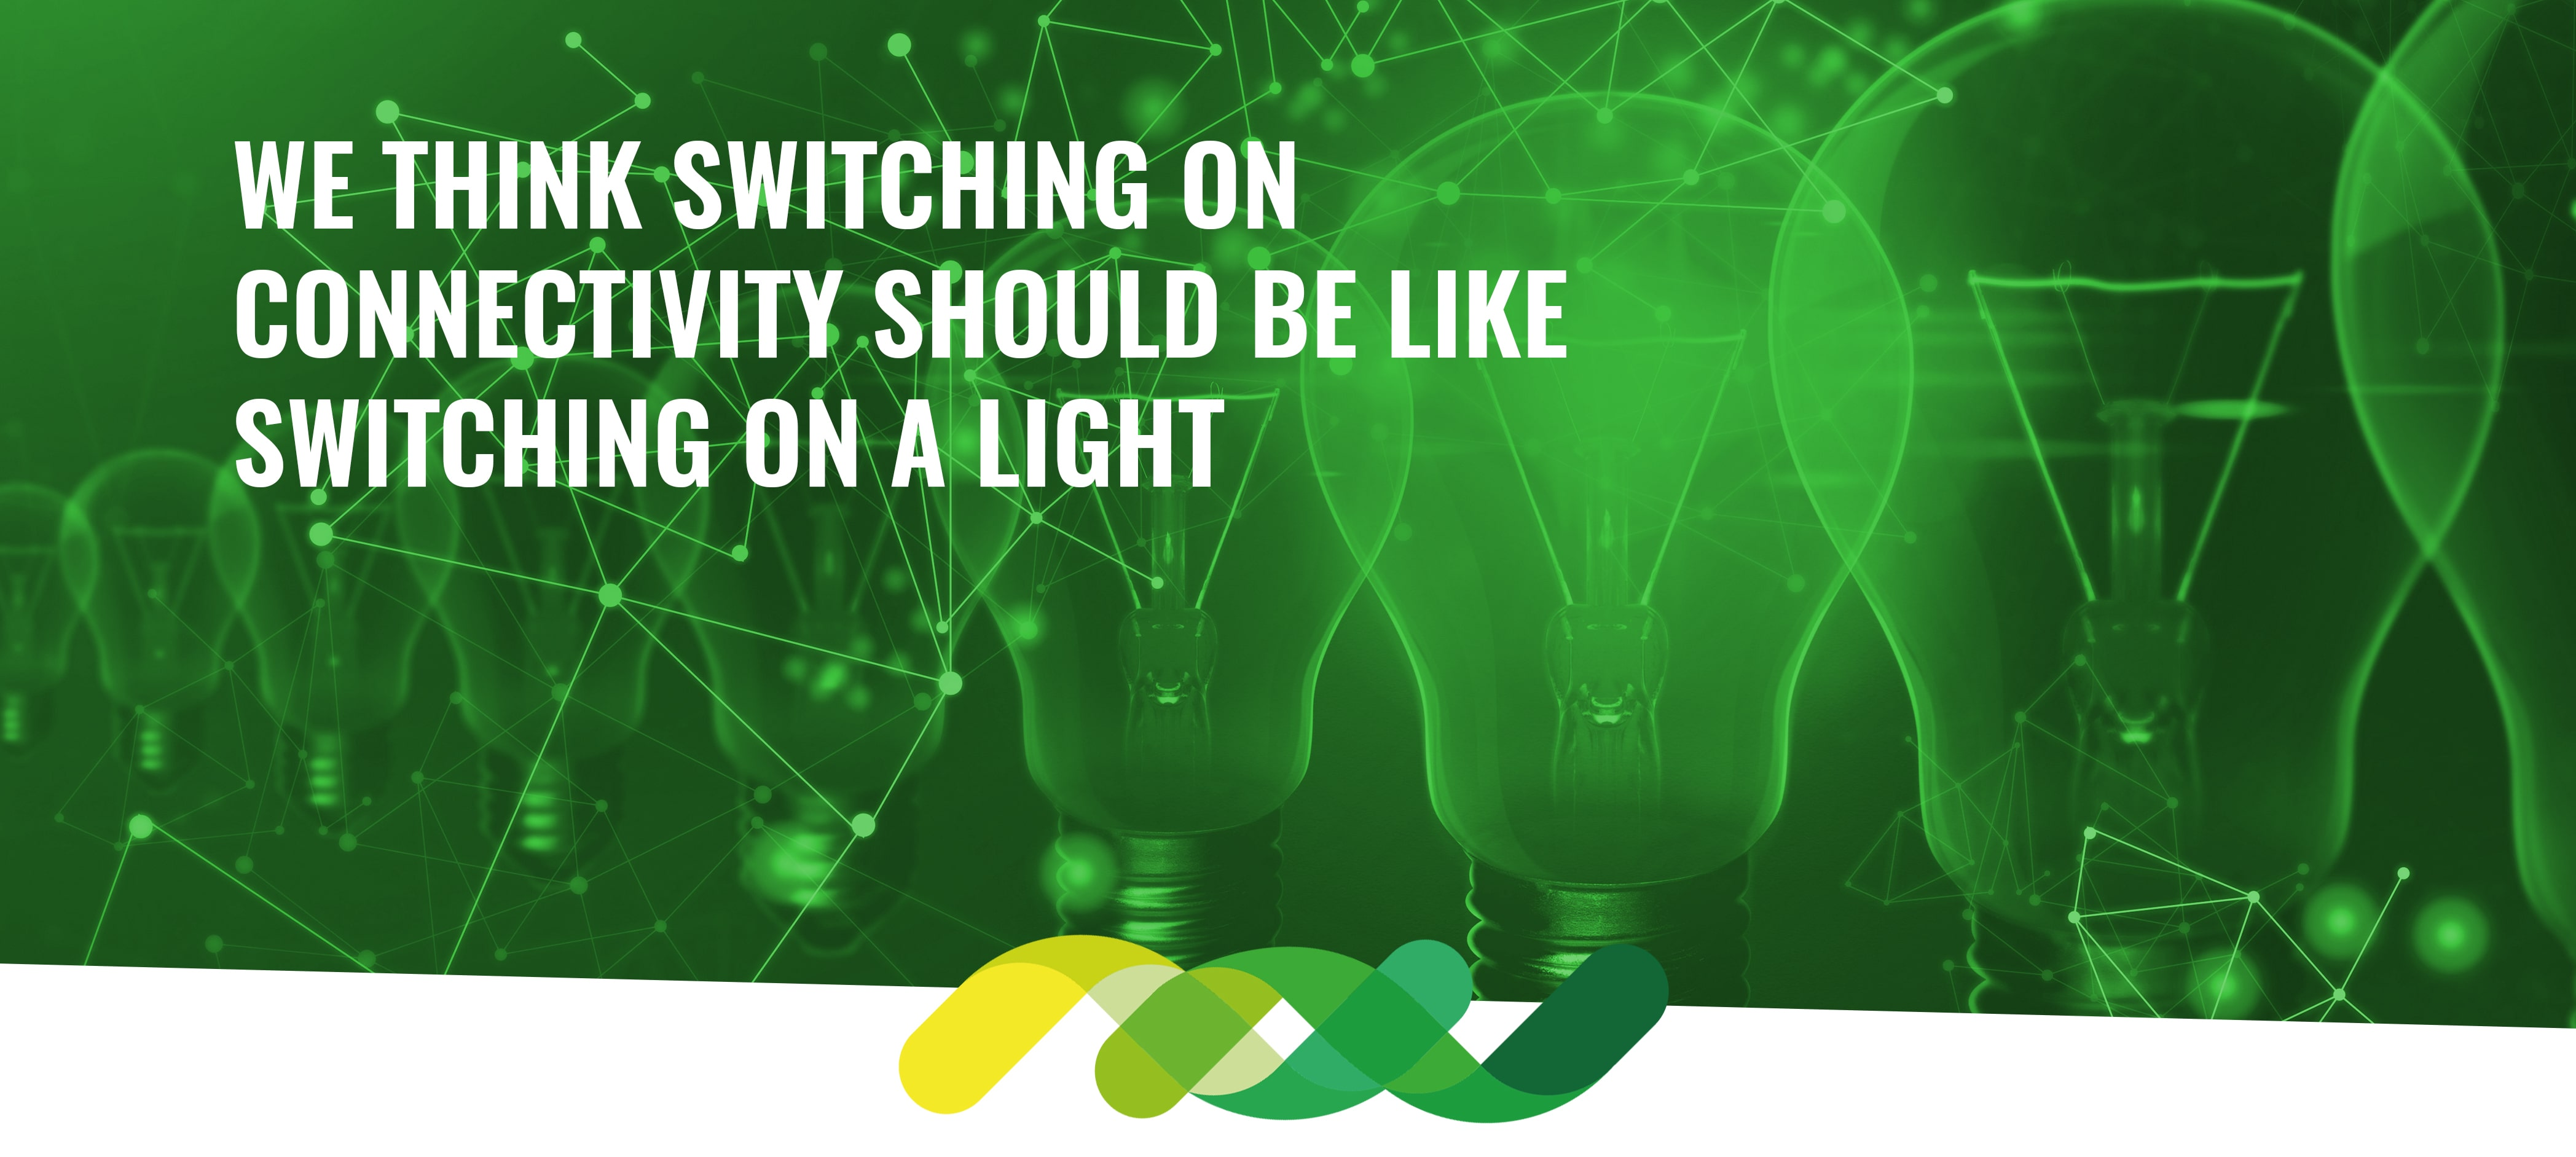 We think switching on connectivity should be like switching on a light